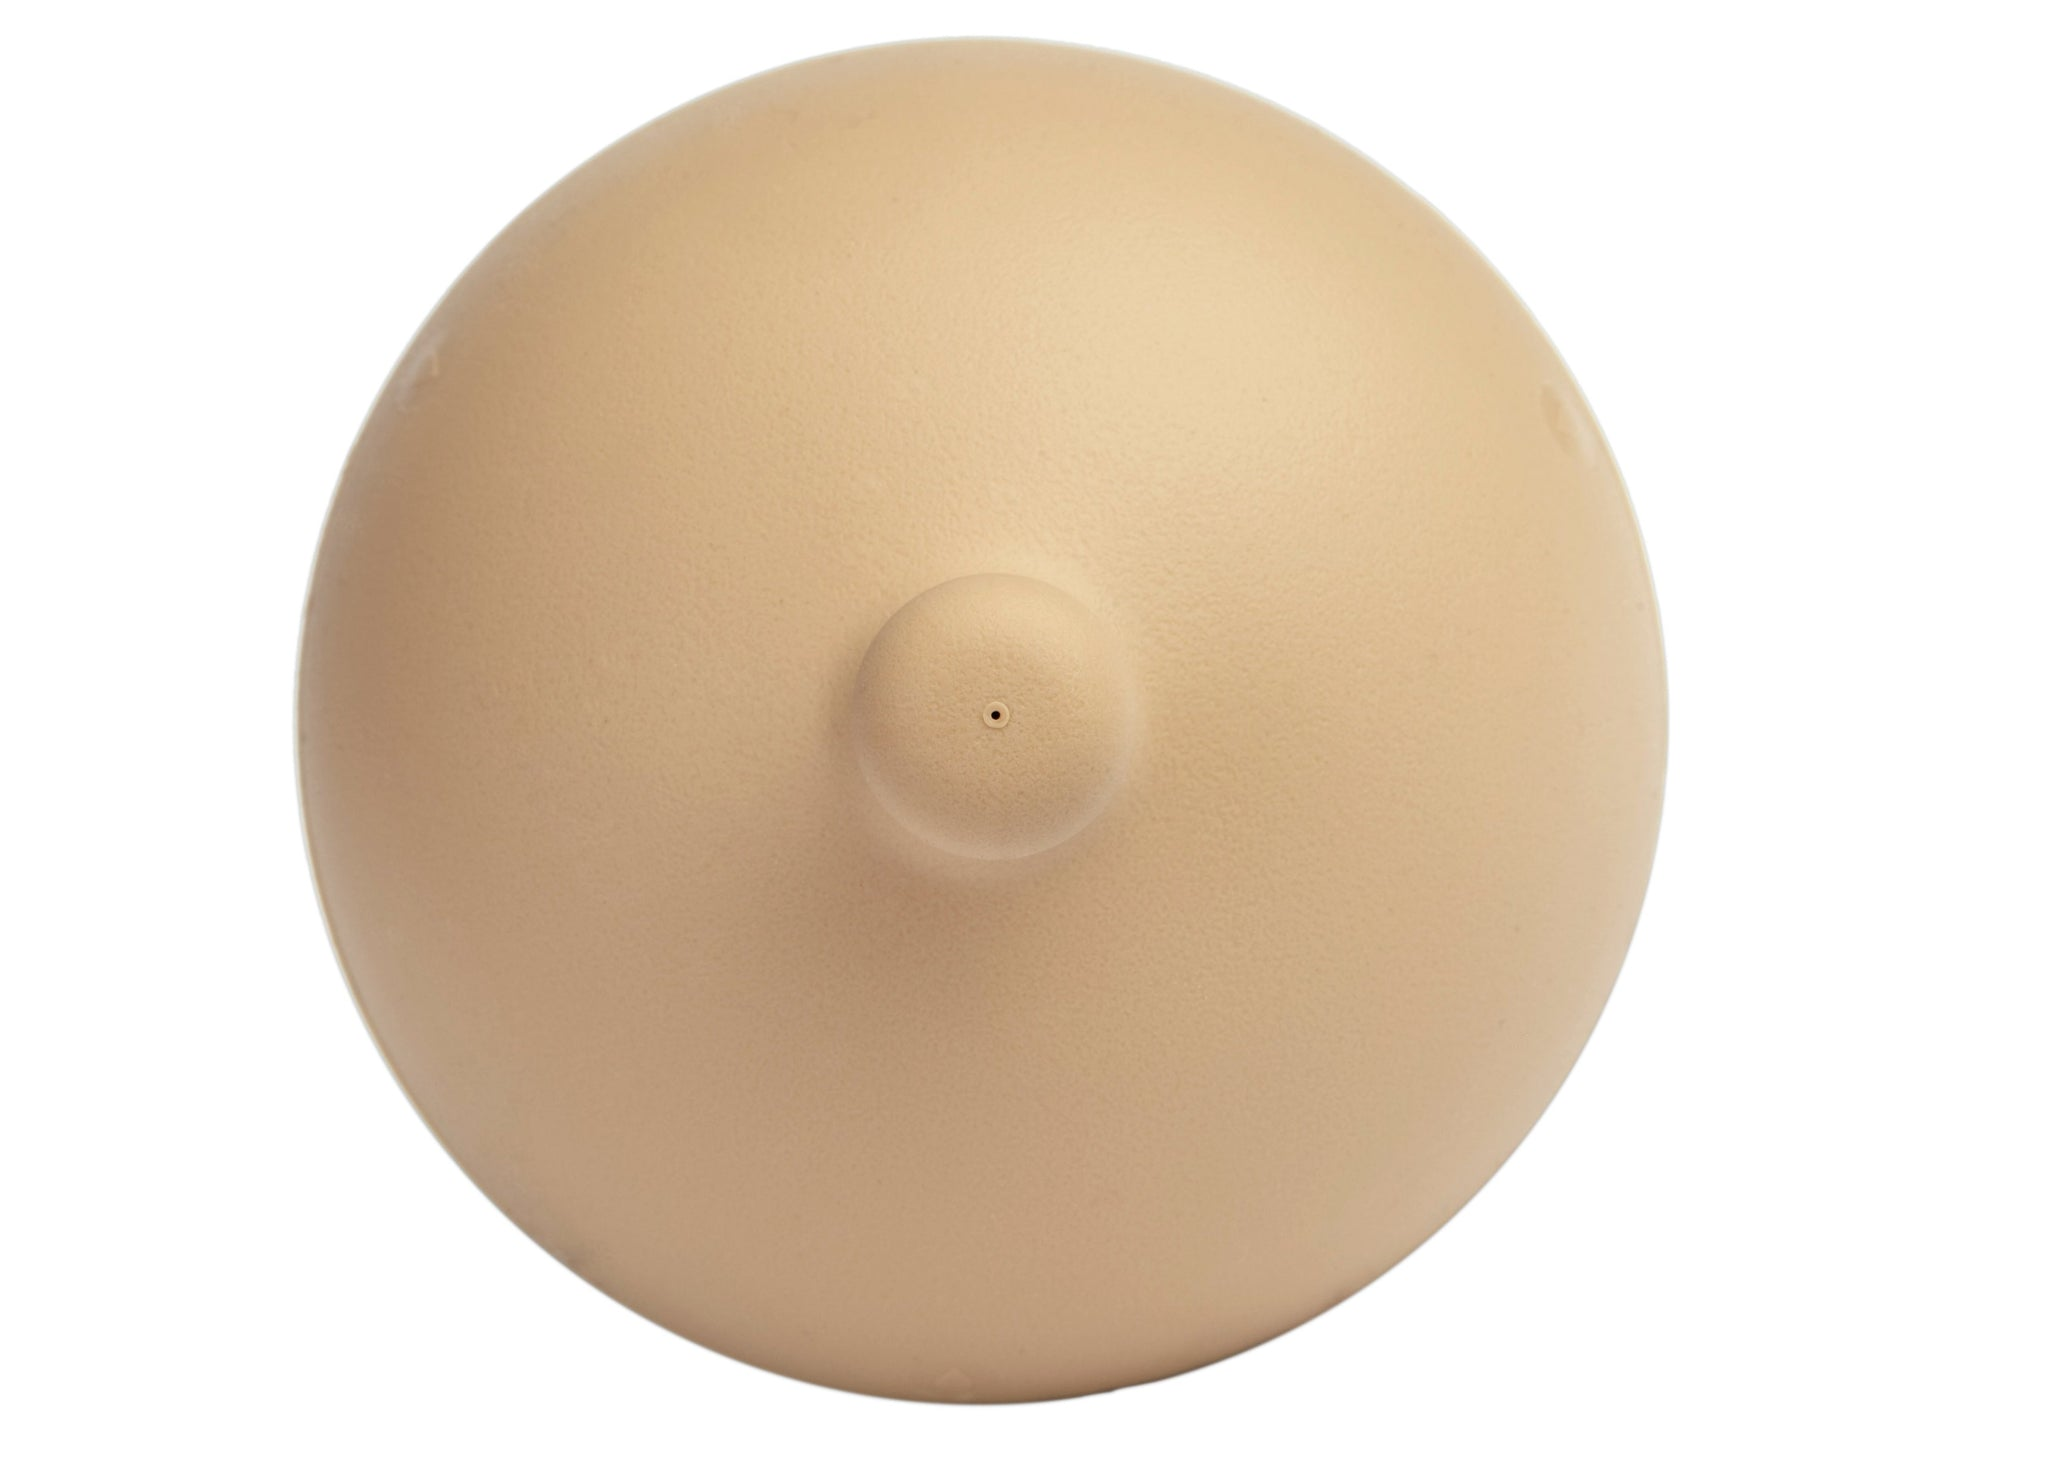 FR-2 (Advanced) Replacement Nipple